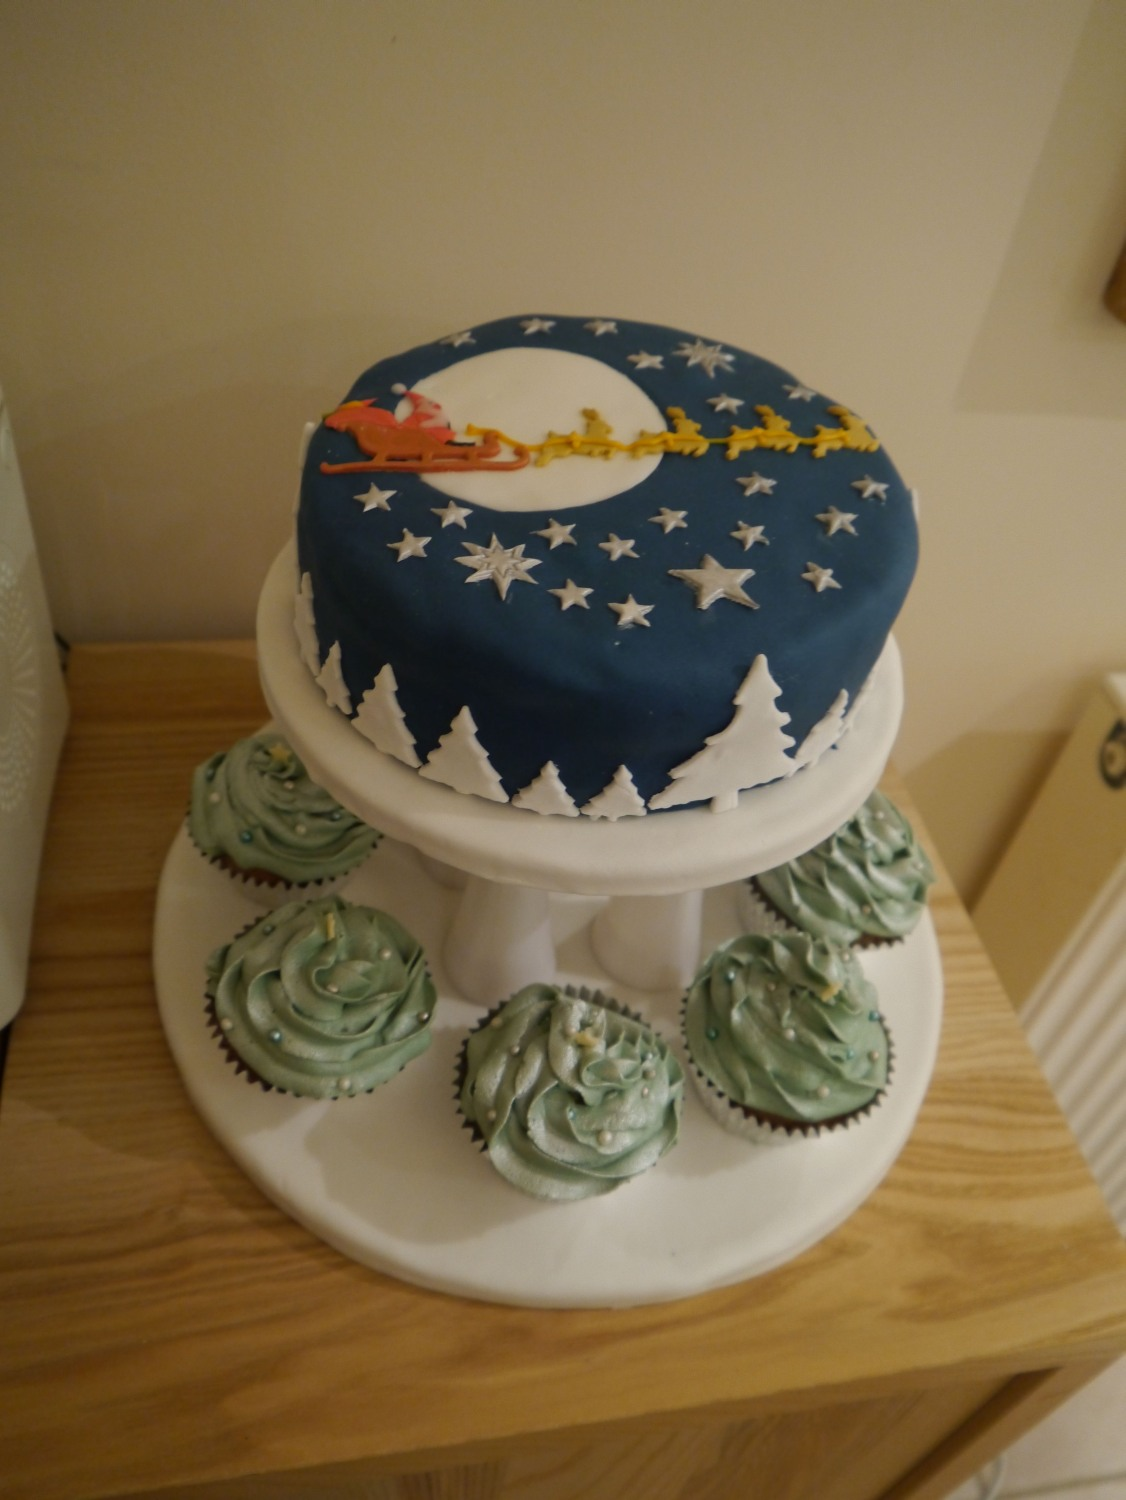 Unusual Christmas Cake Decoration : Pin by Elaine Evans on Cakes Pinterest